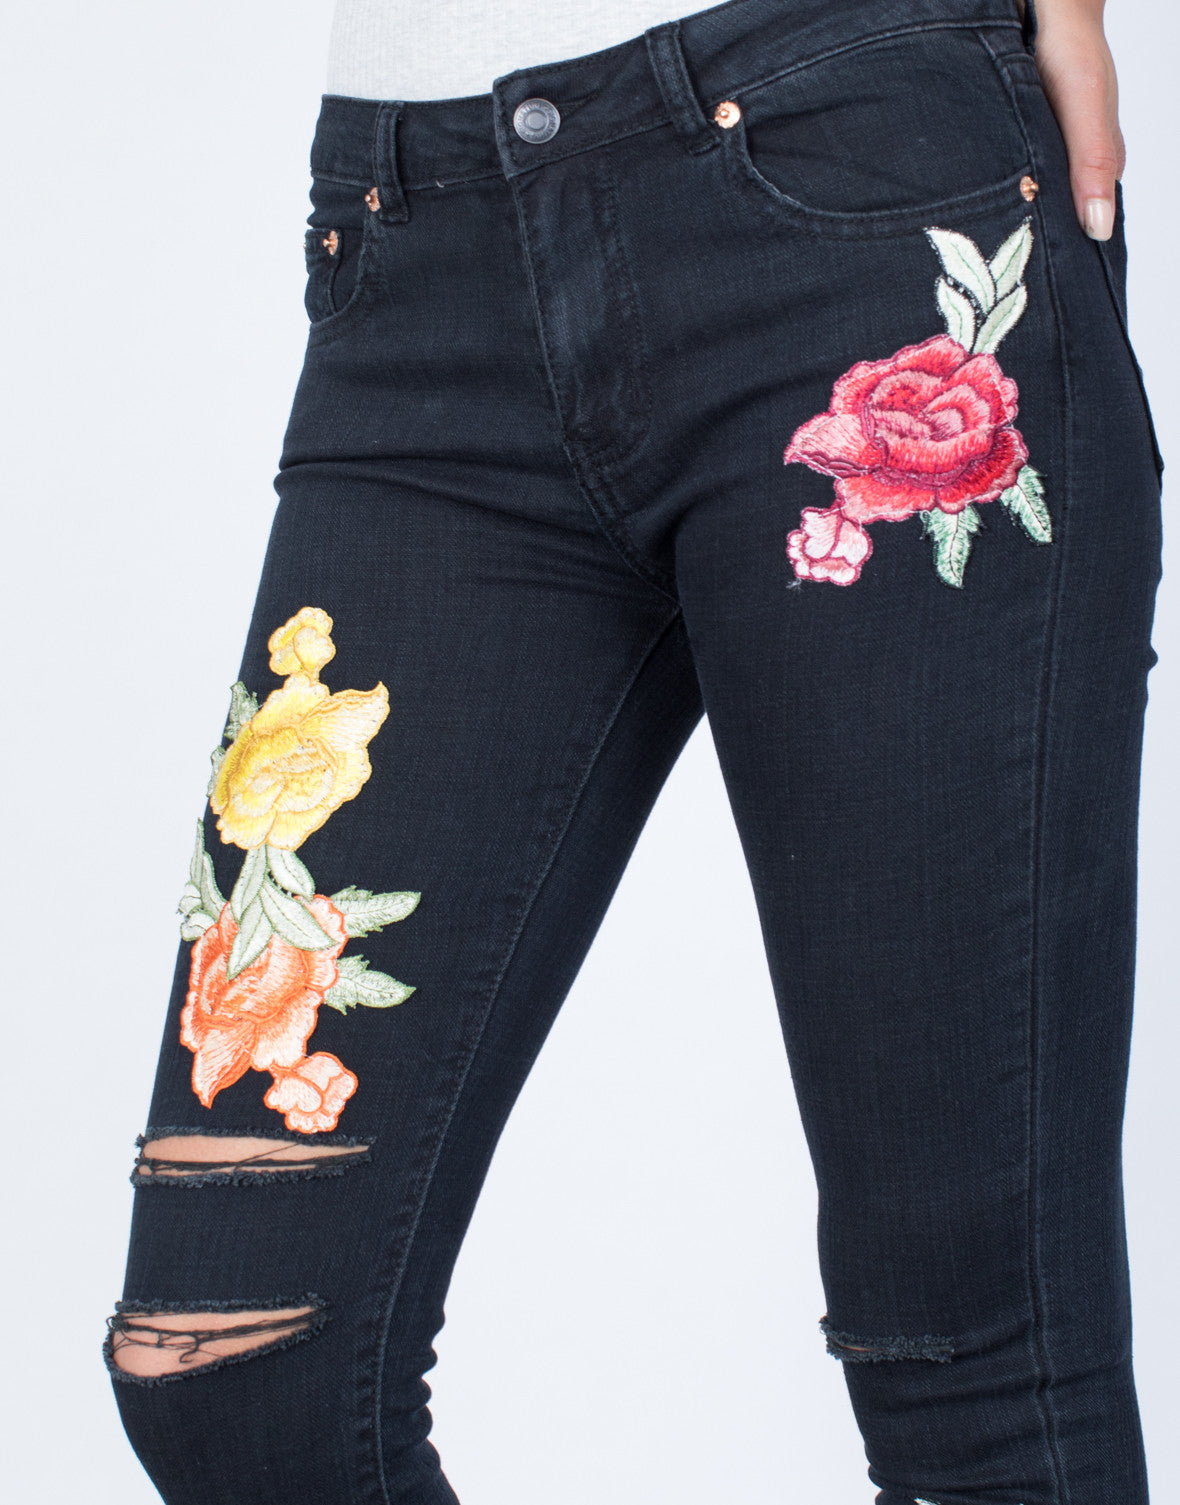 Detail of Bloom into Color Jeans